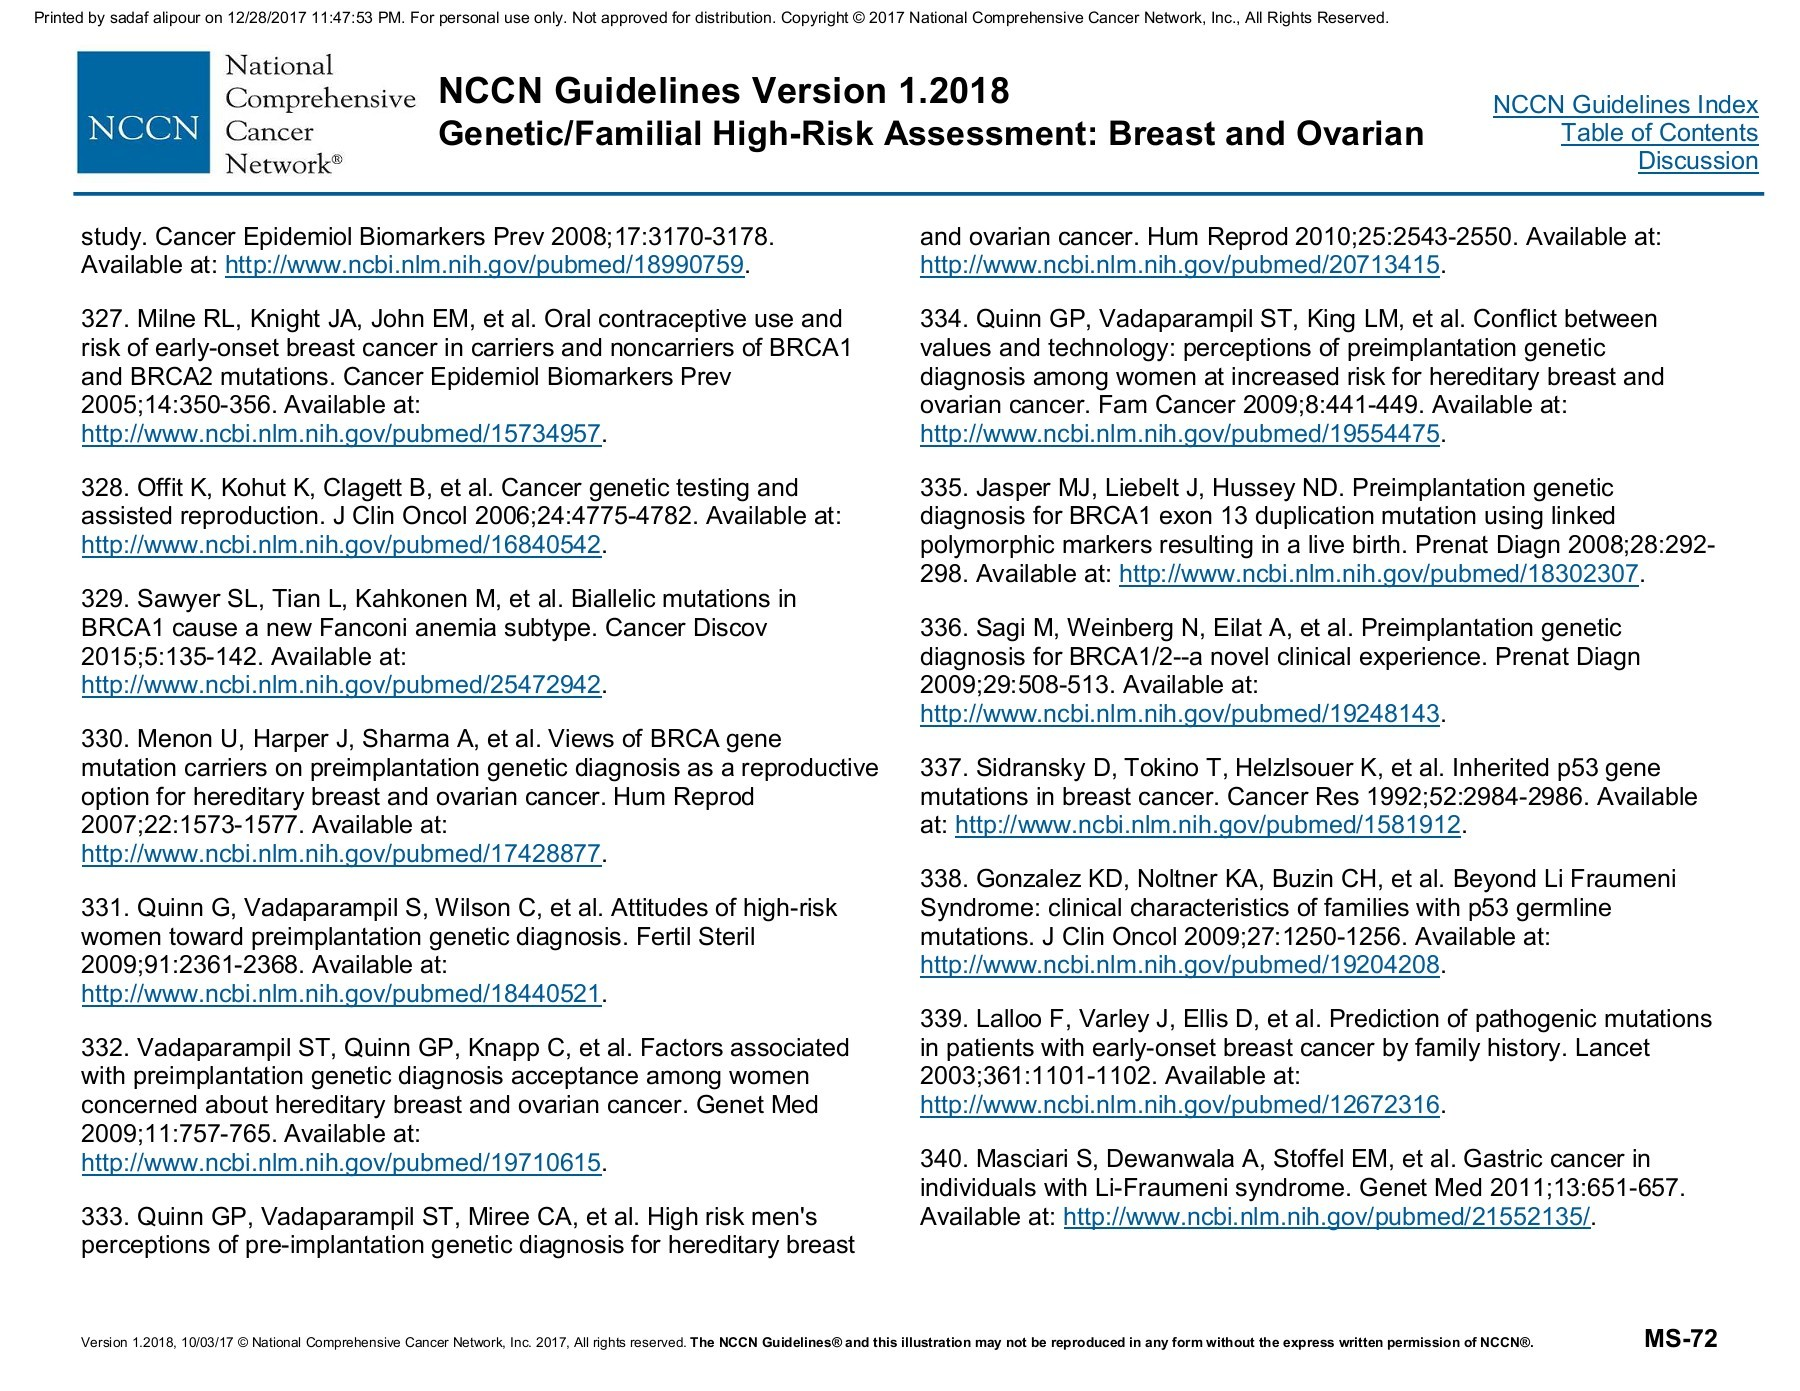 Nccn Bc Oc Risk Assessment Flip Book Pages 101 110 Pubhtml5